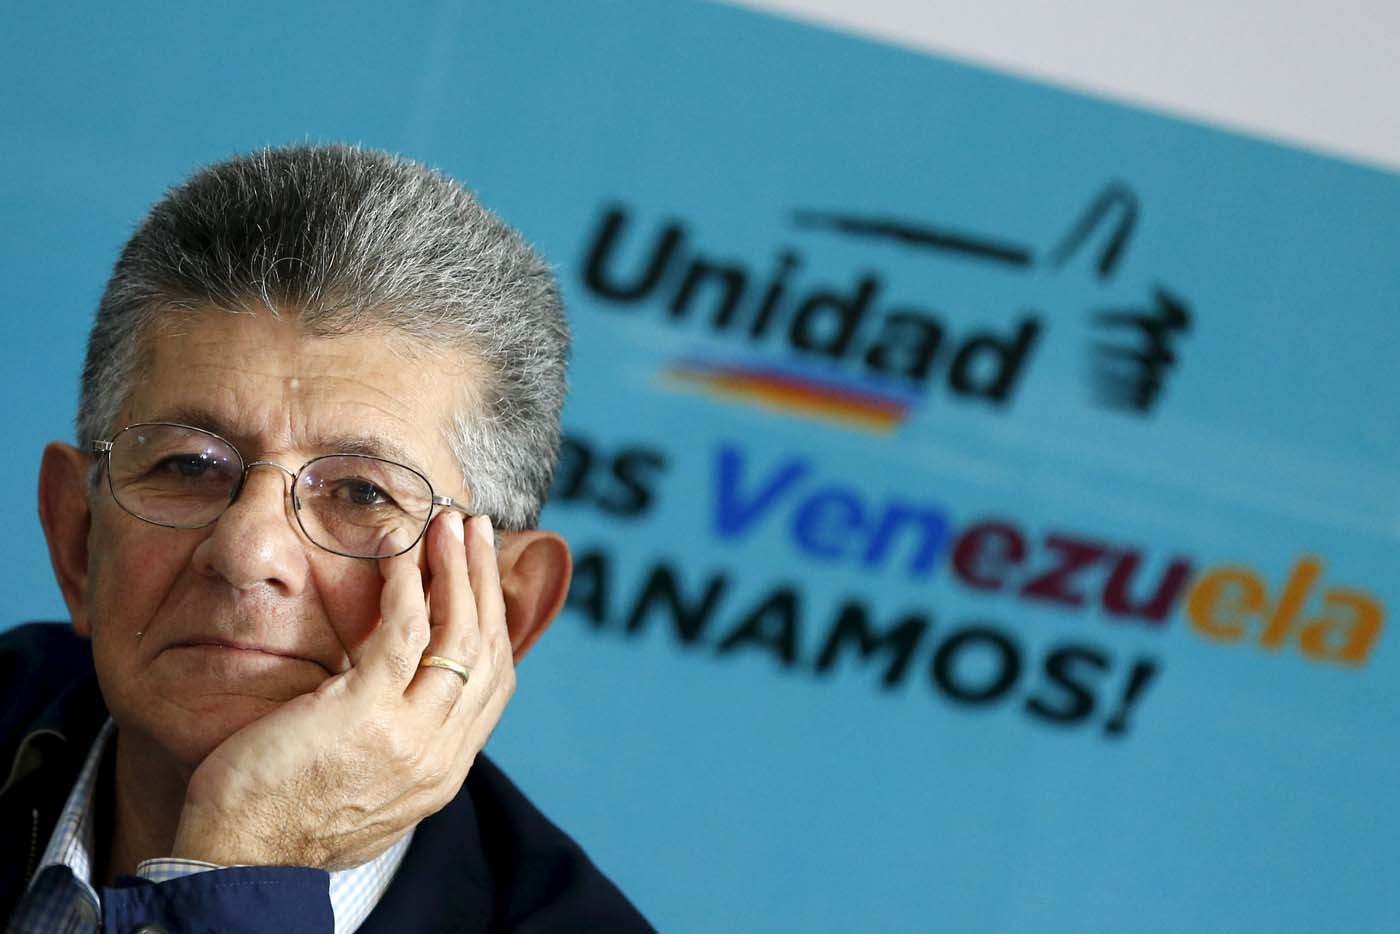 Henry Ramos Allup, a new elected deputy from Venezuelan coalition of opposition parties (MUD) attends to a news conference in Caracas, Venezuela, December 11, 2015. REUTERS/Carlos Garcia Rawlins